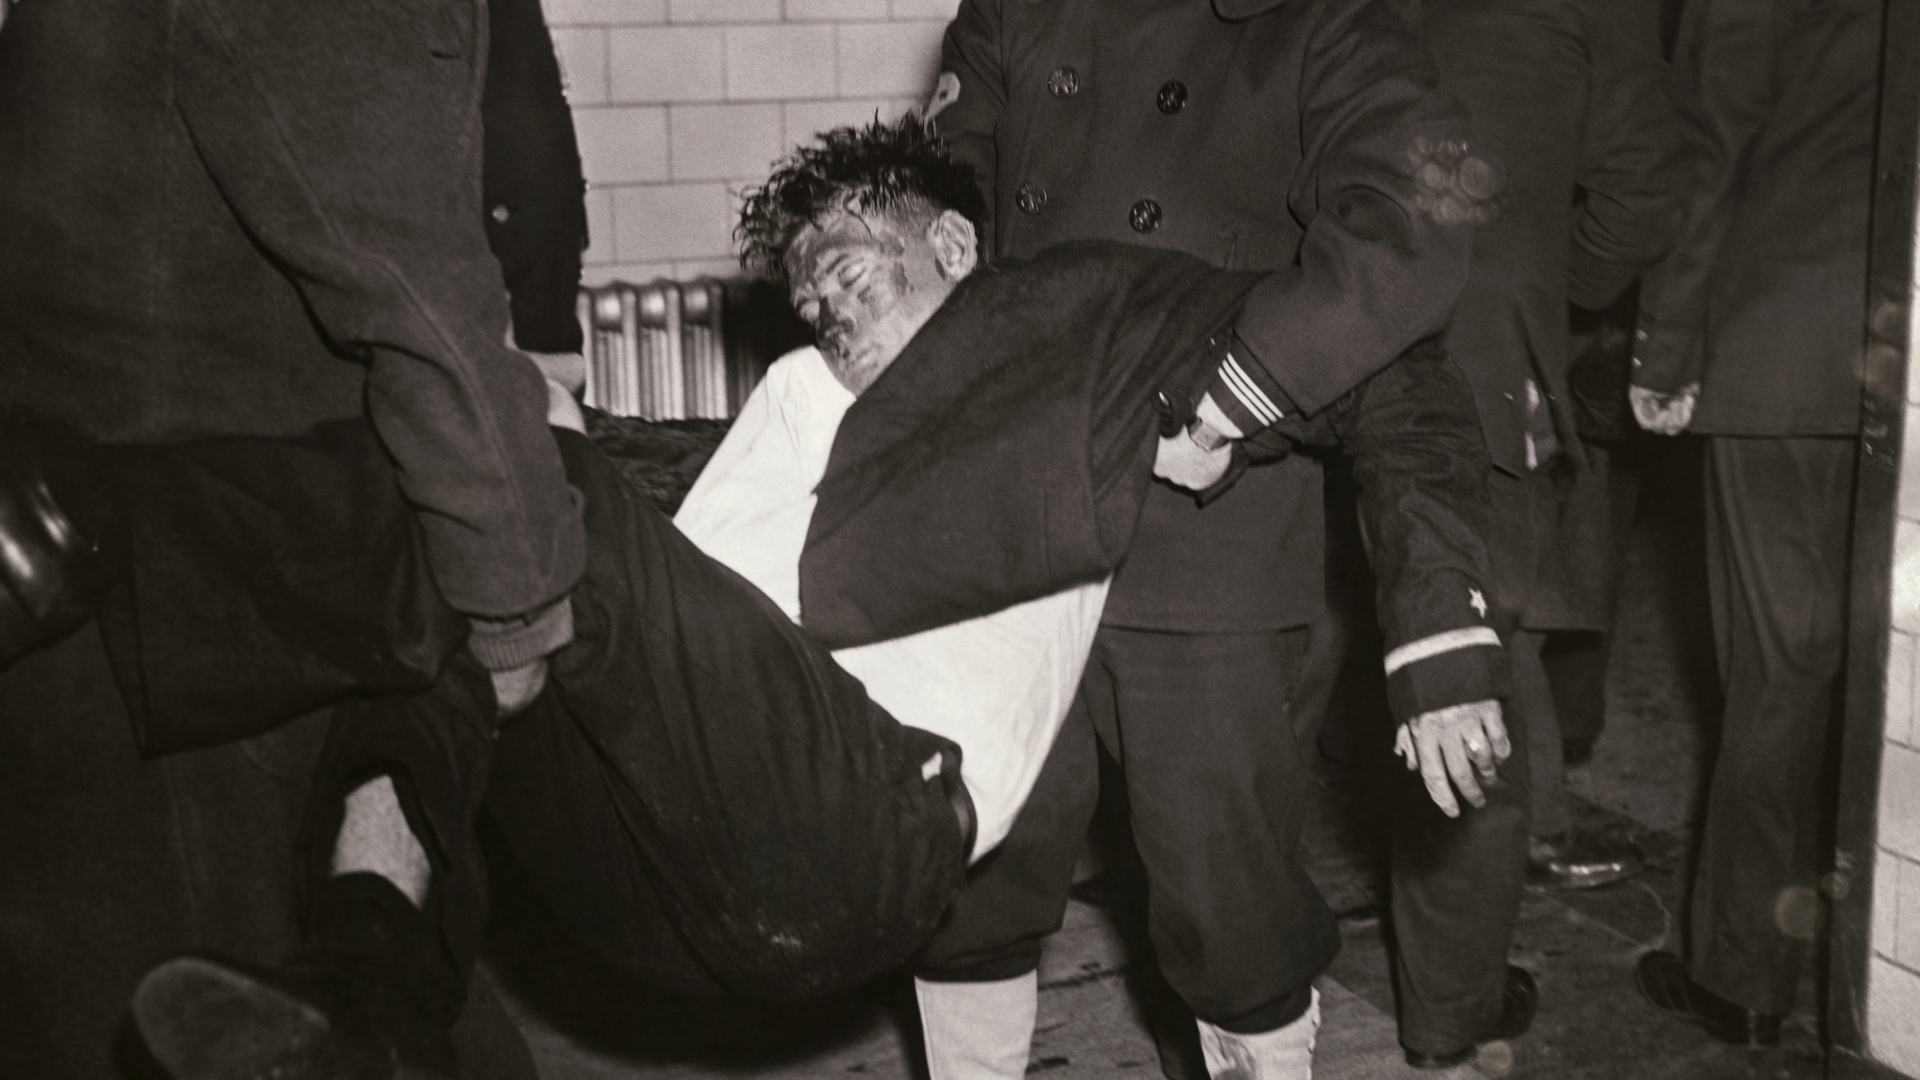 One of the victims of the Cocoanut Grove fire being carried out to safety. (Credit: Bettmann Archive/Getty Images)